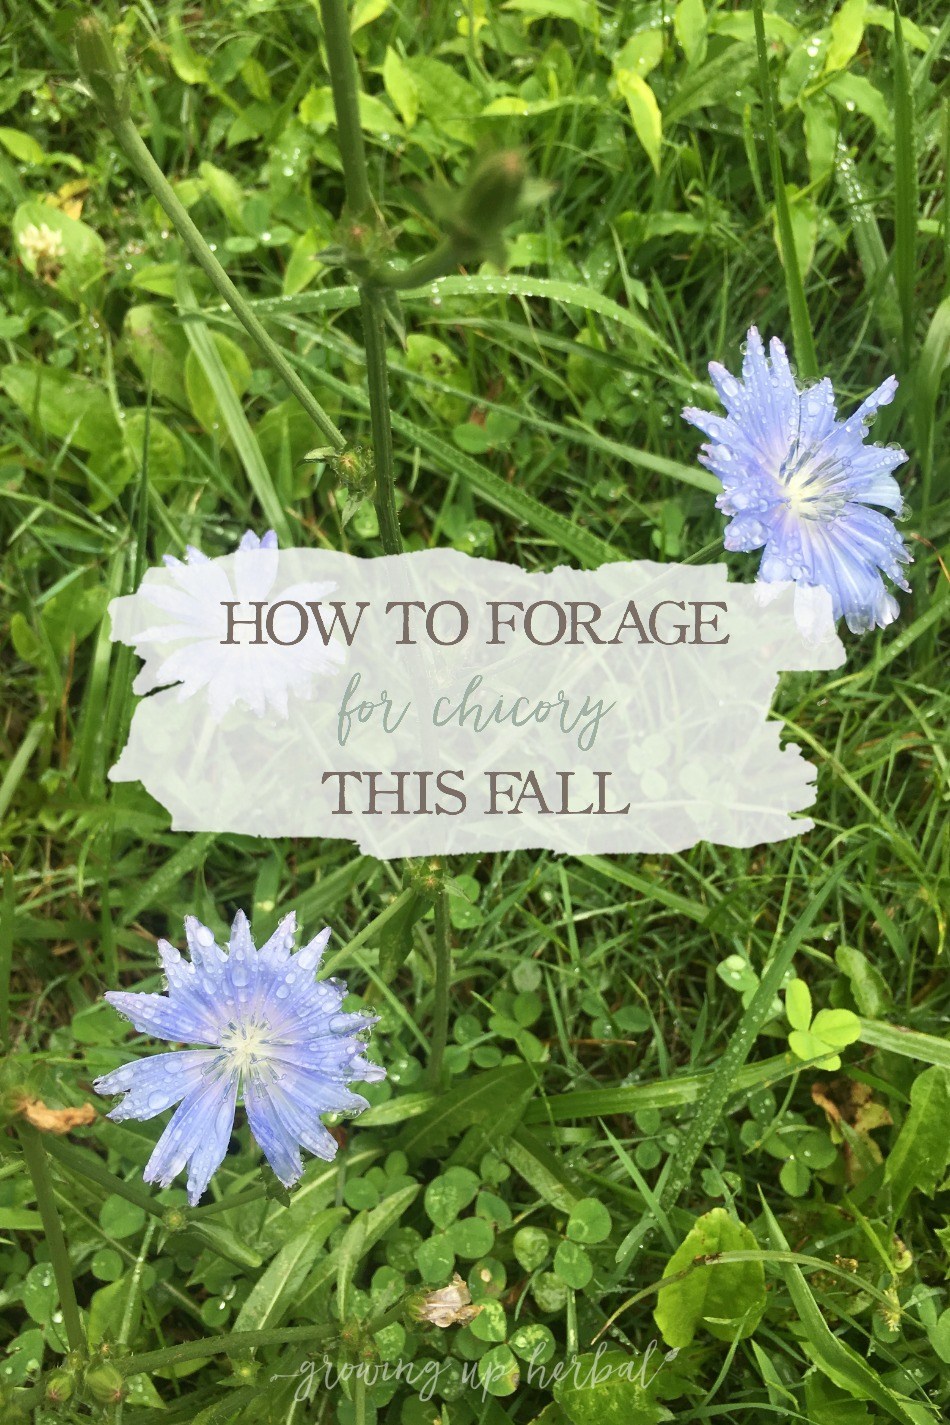 How To Forage For Chicory This Fall